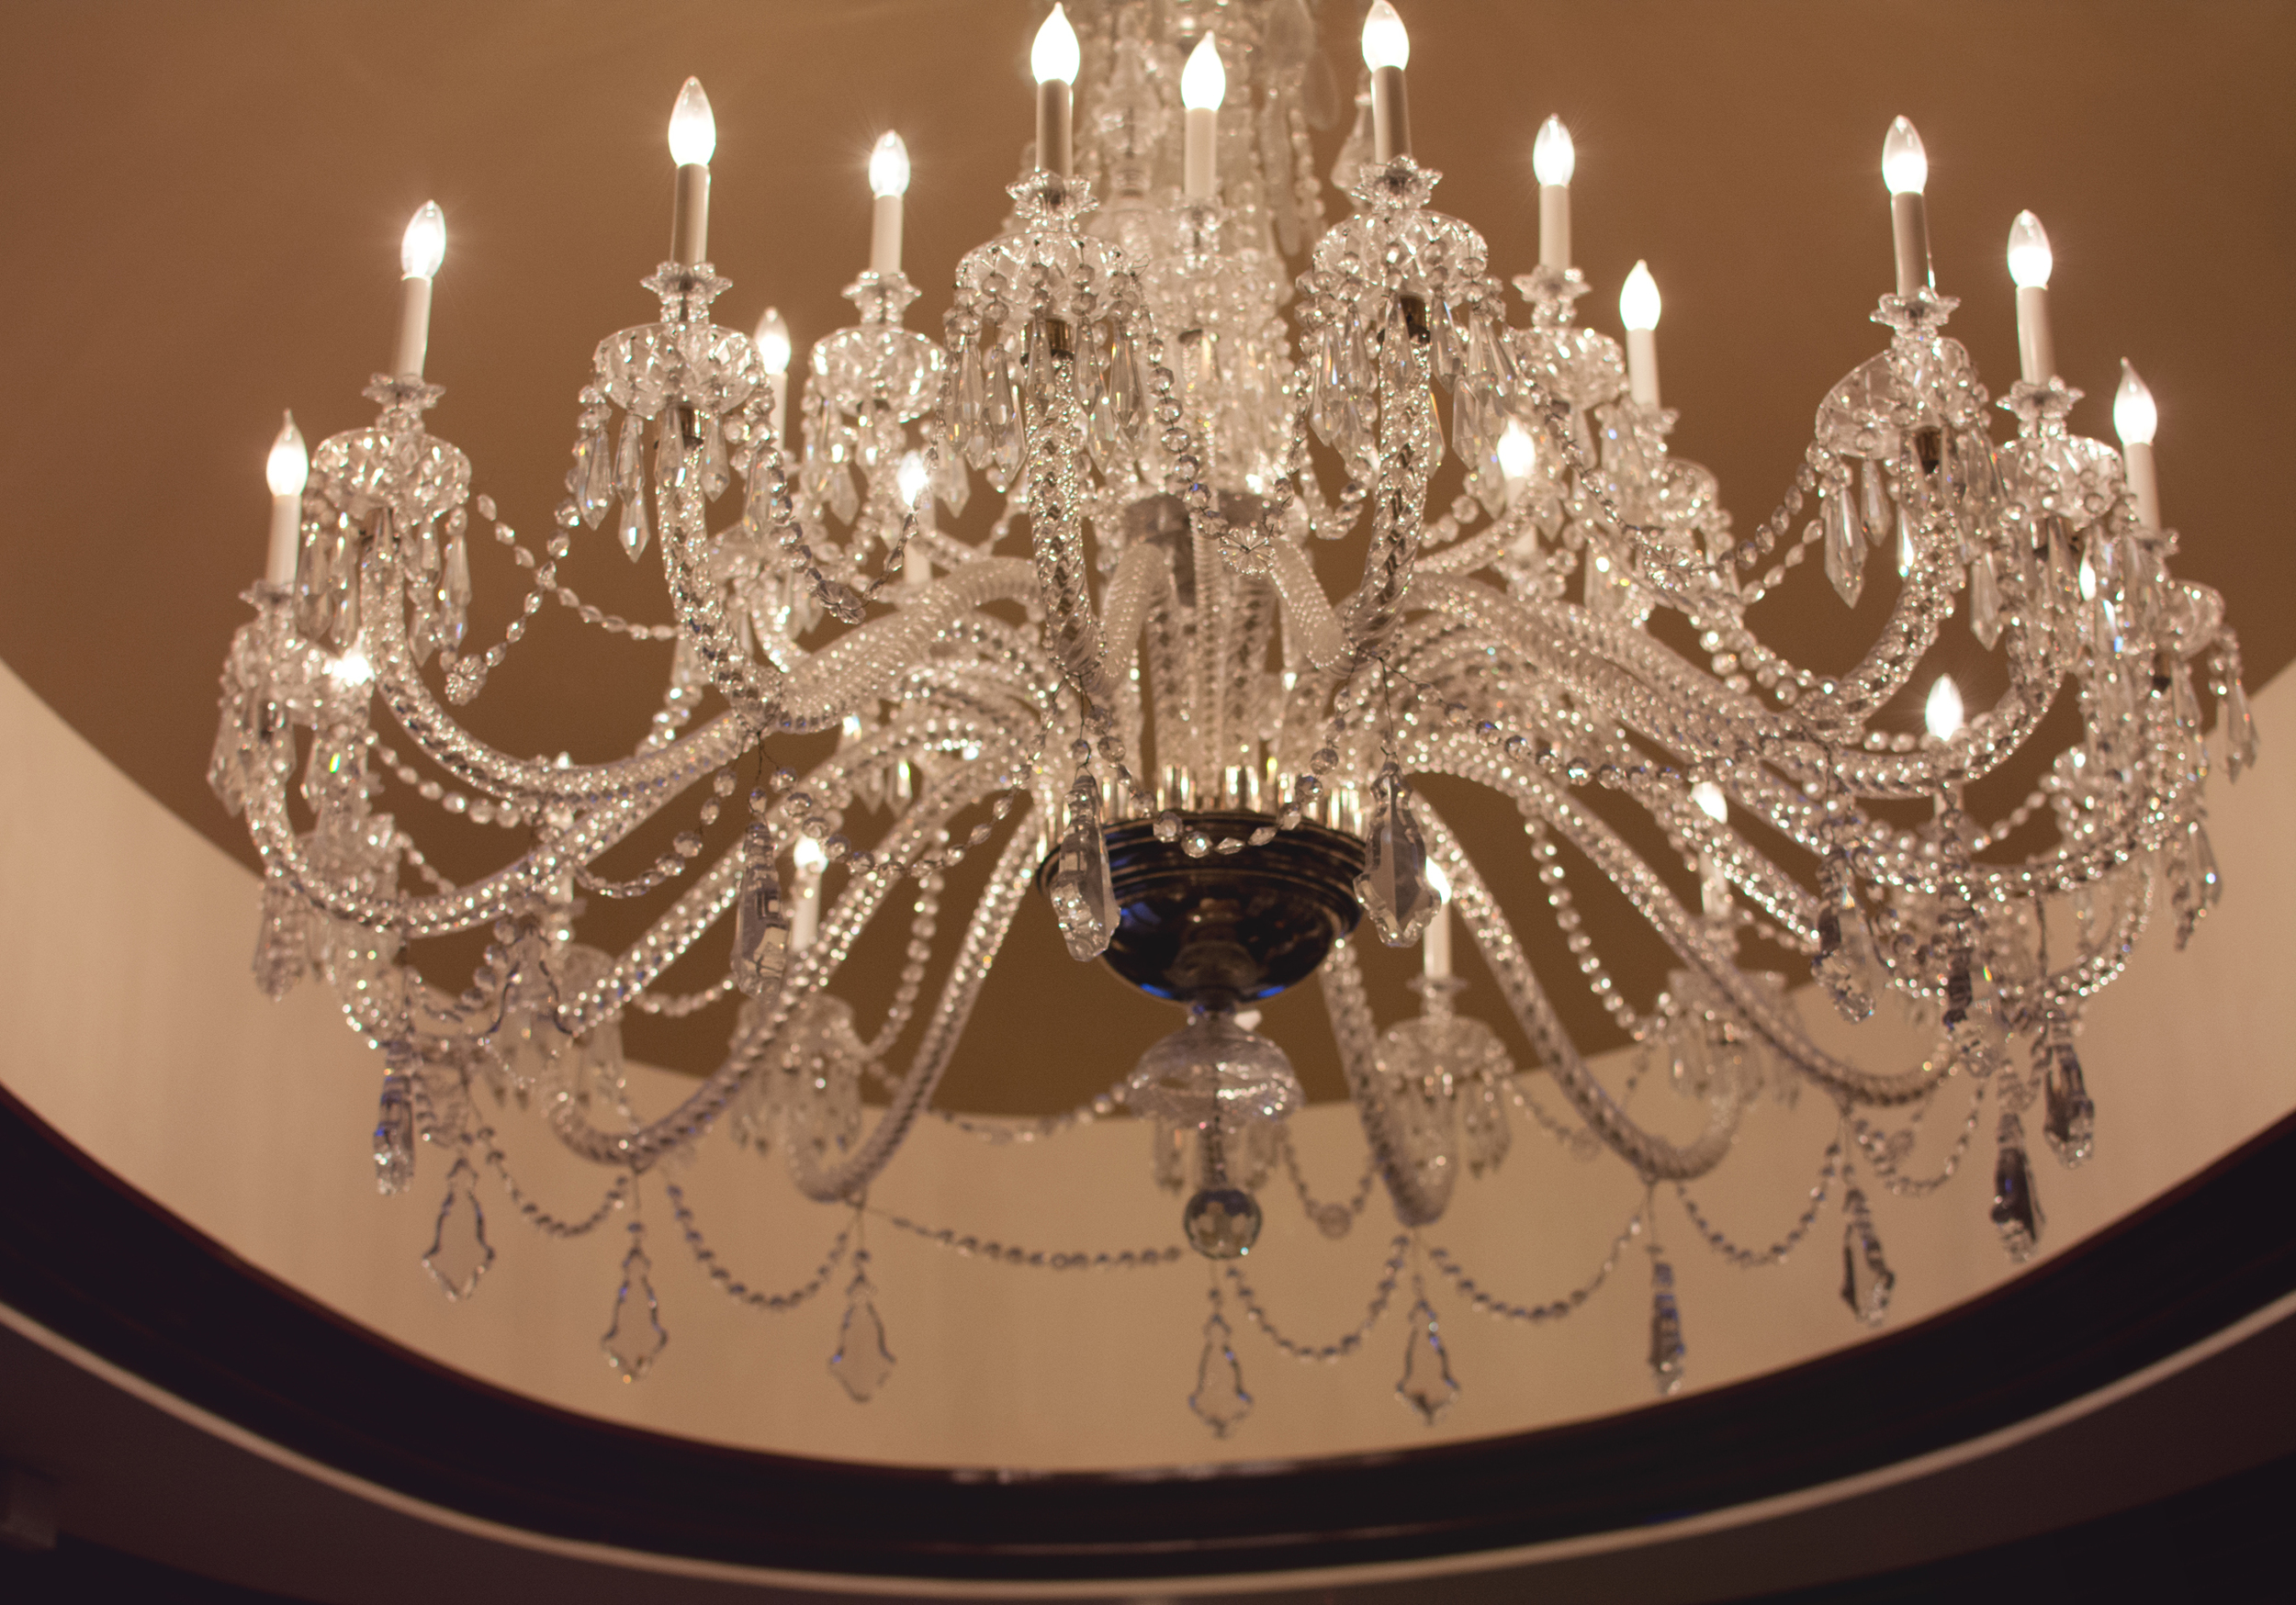 Chandelier in the entry way of the Presidential Suite